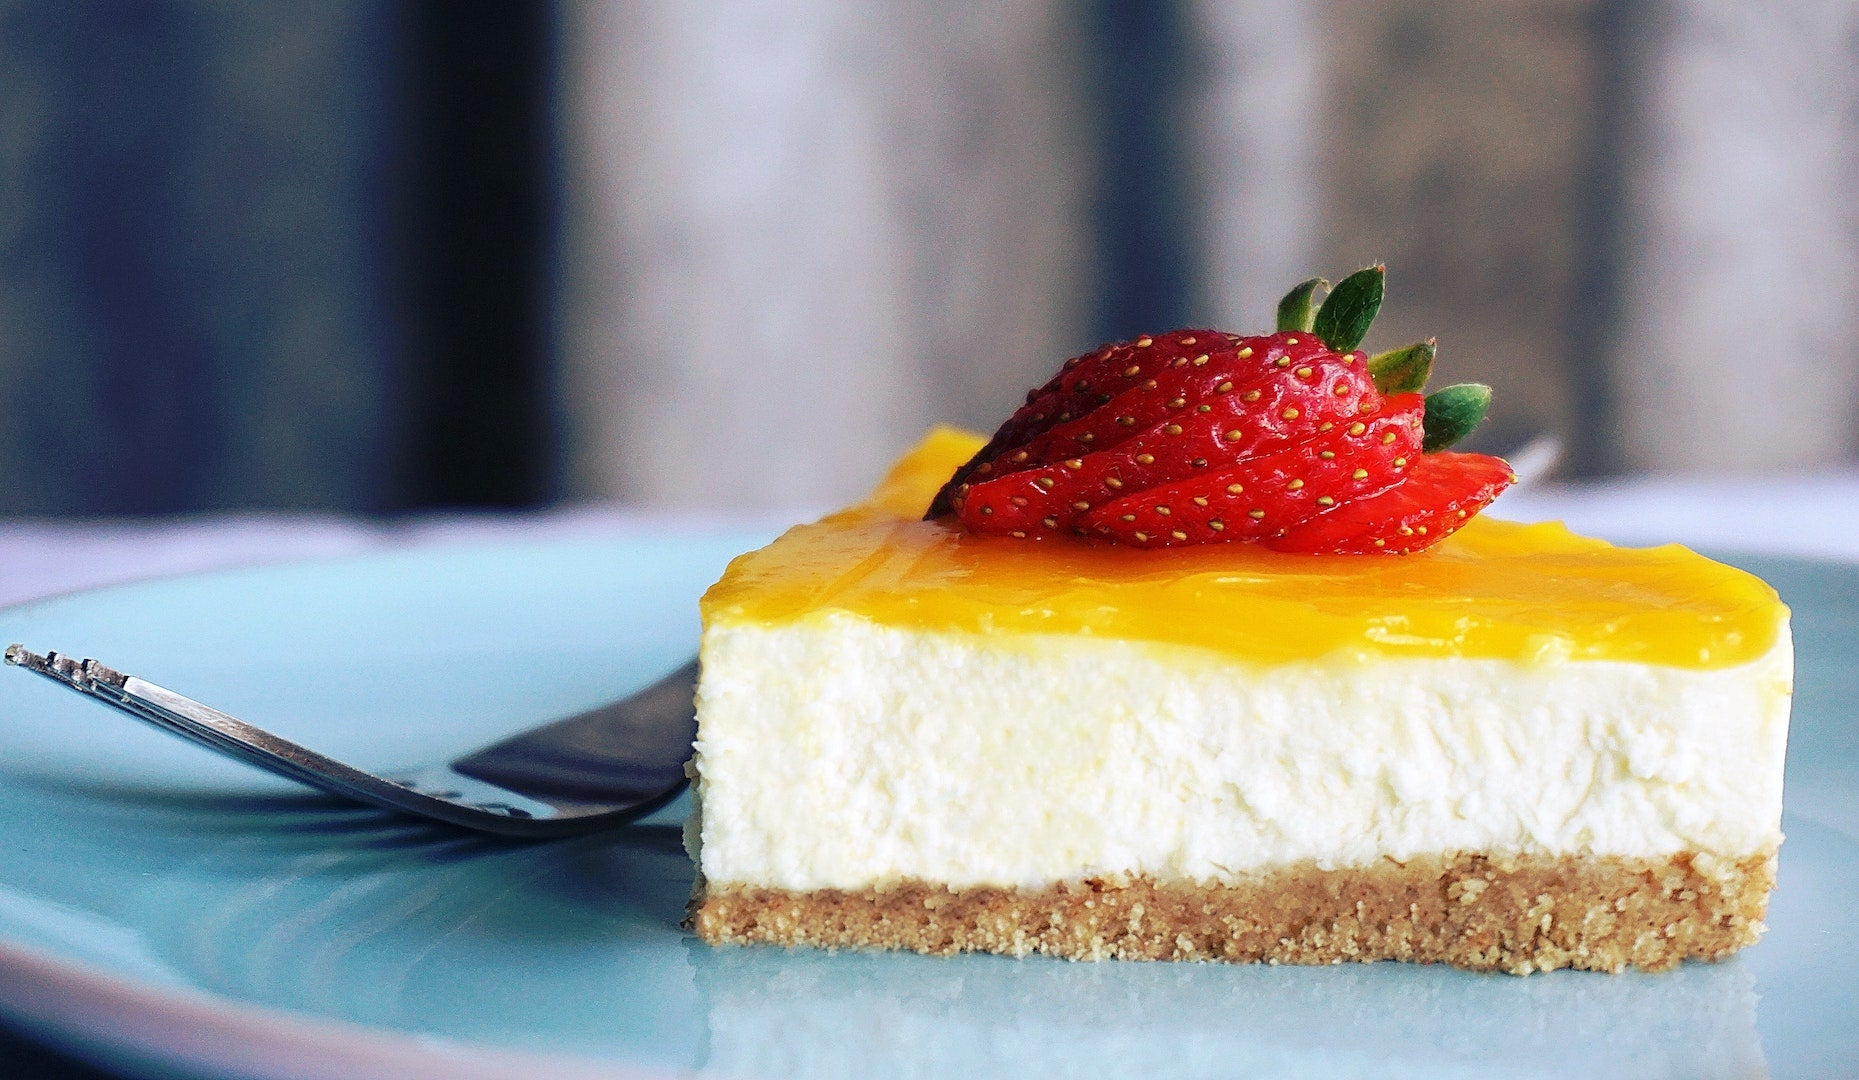 Image of one father's day desserts option: sous vide cheese cake.